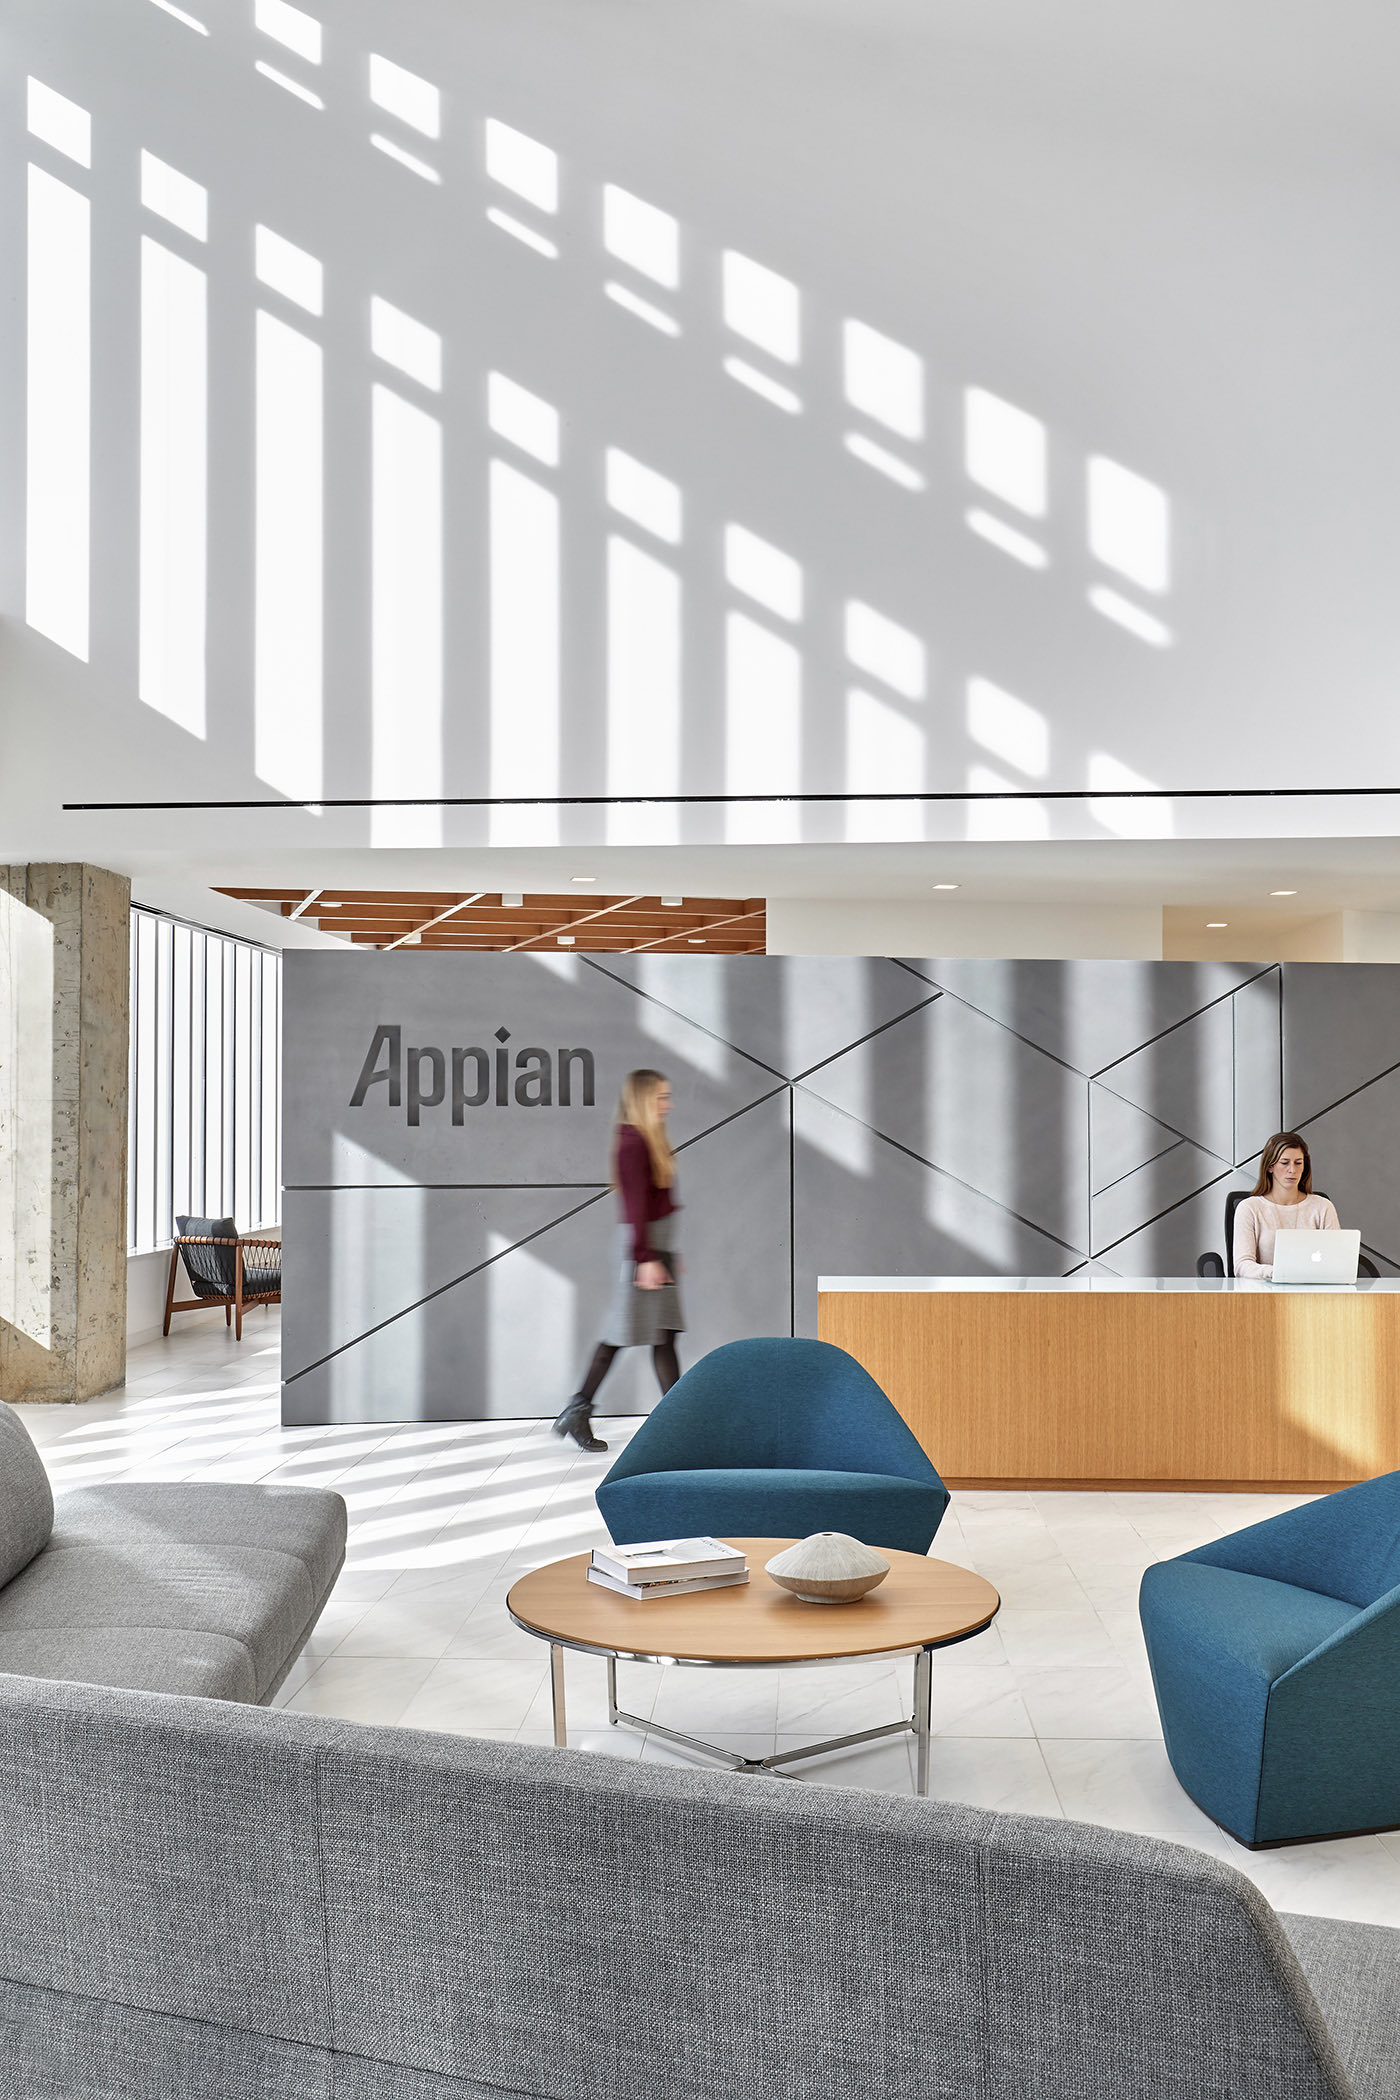 appian-tysons-office-1